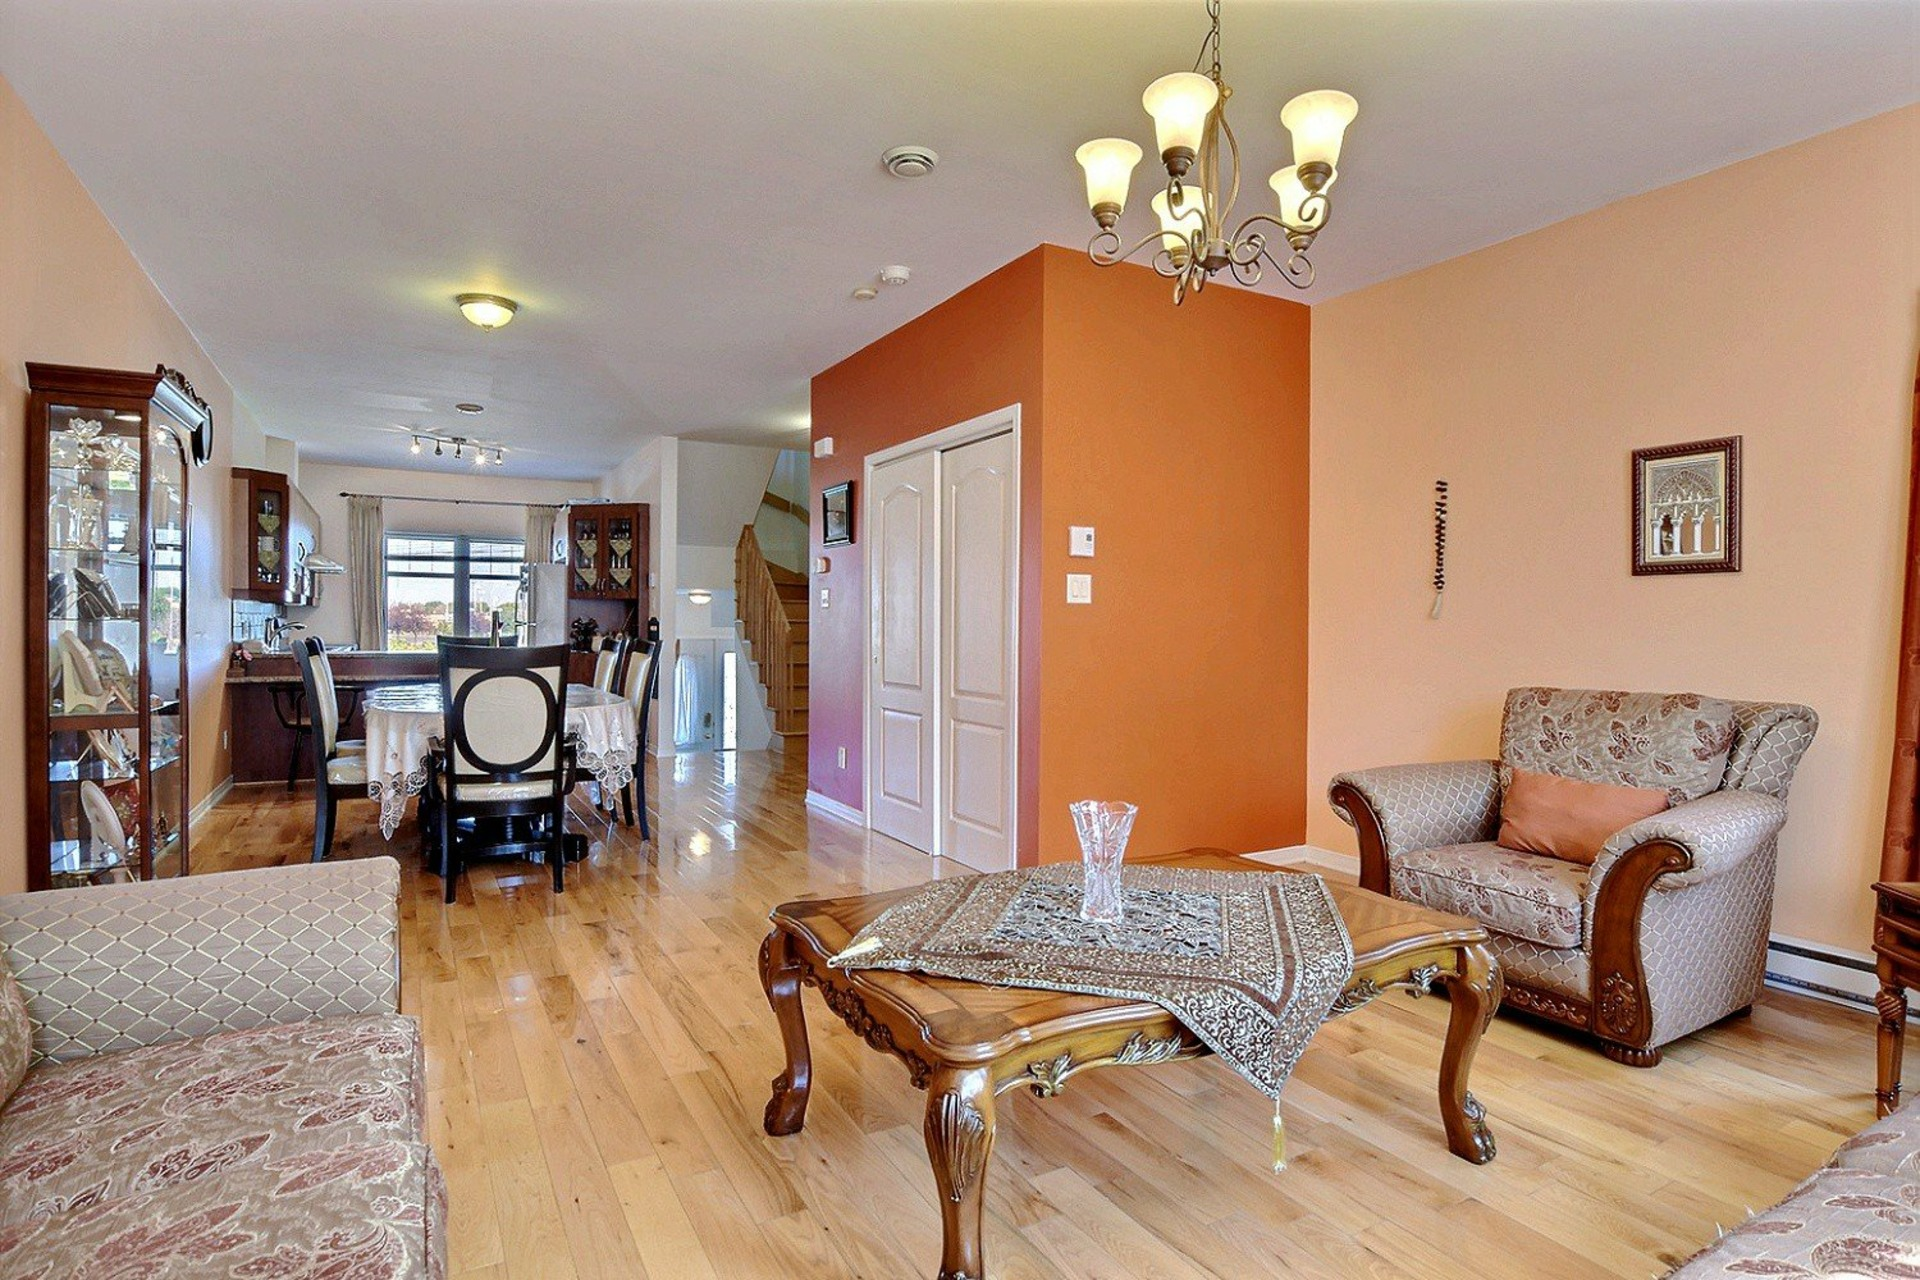 image 4 - House For sale Brossard - 6 rooms